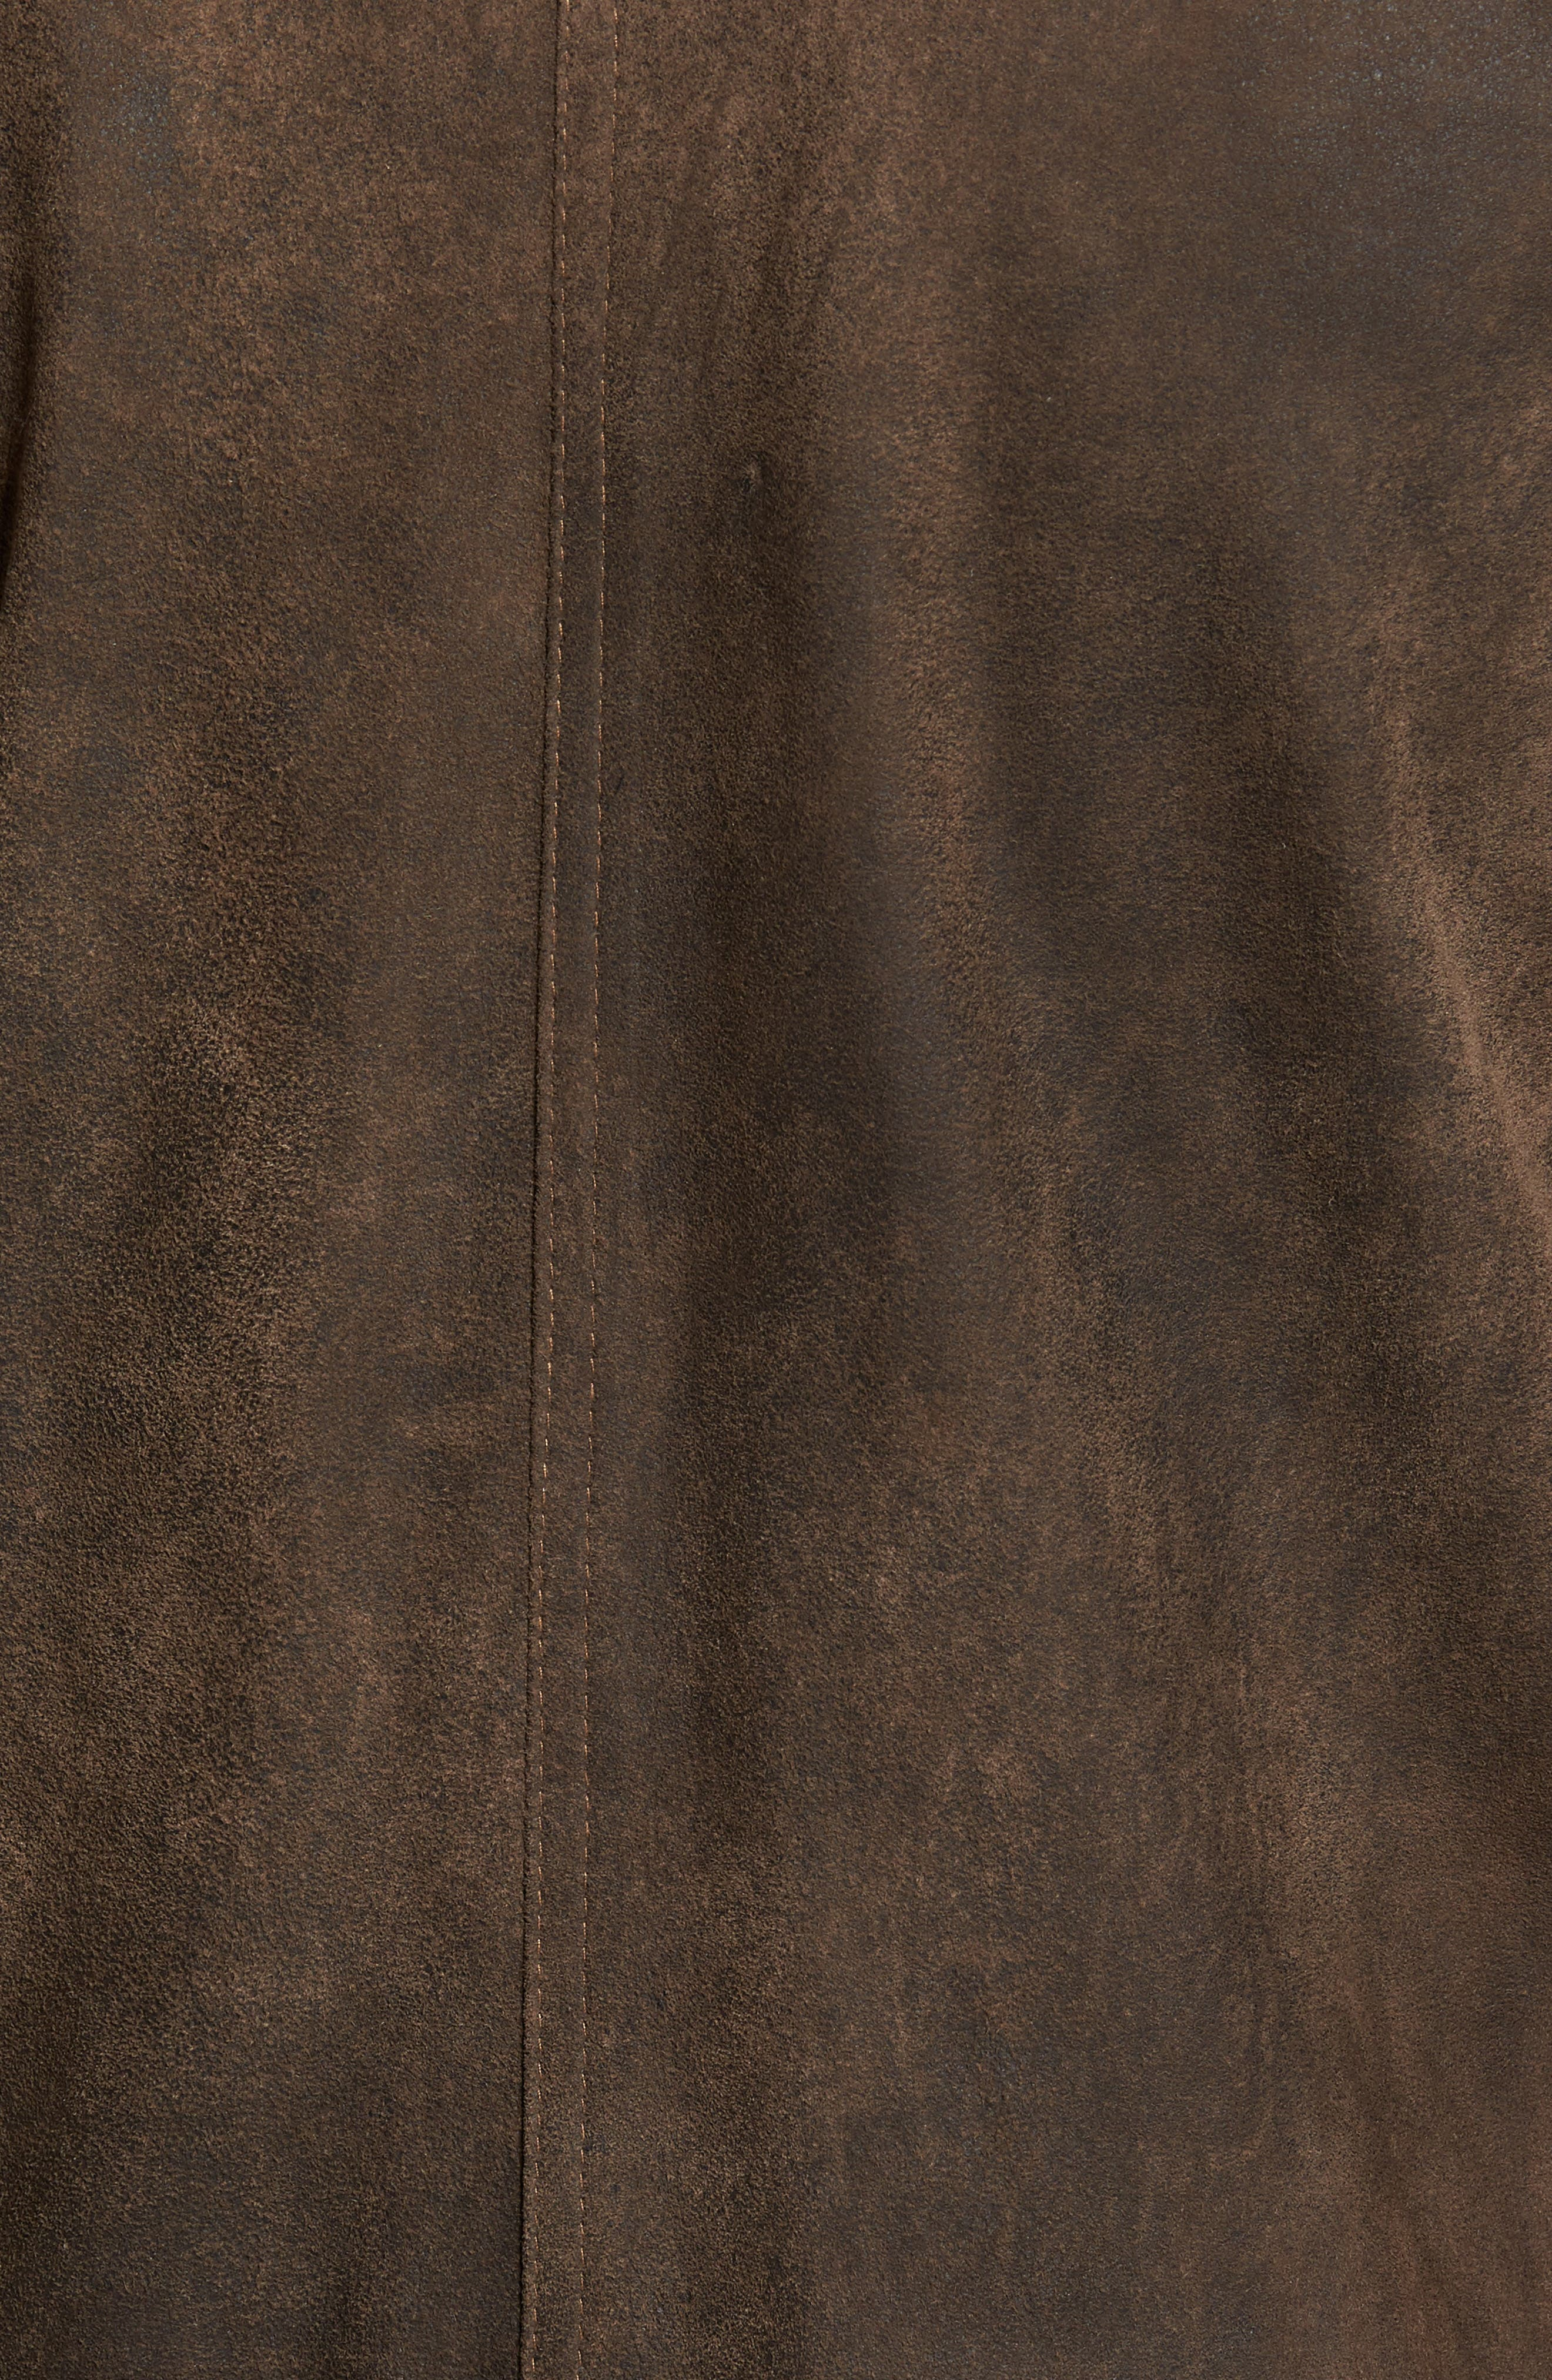 Suede Moto Jacket,                             Alternate thumbnail 5, color,                             Frontier/ Cocoa